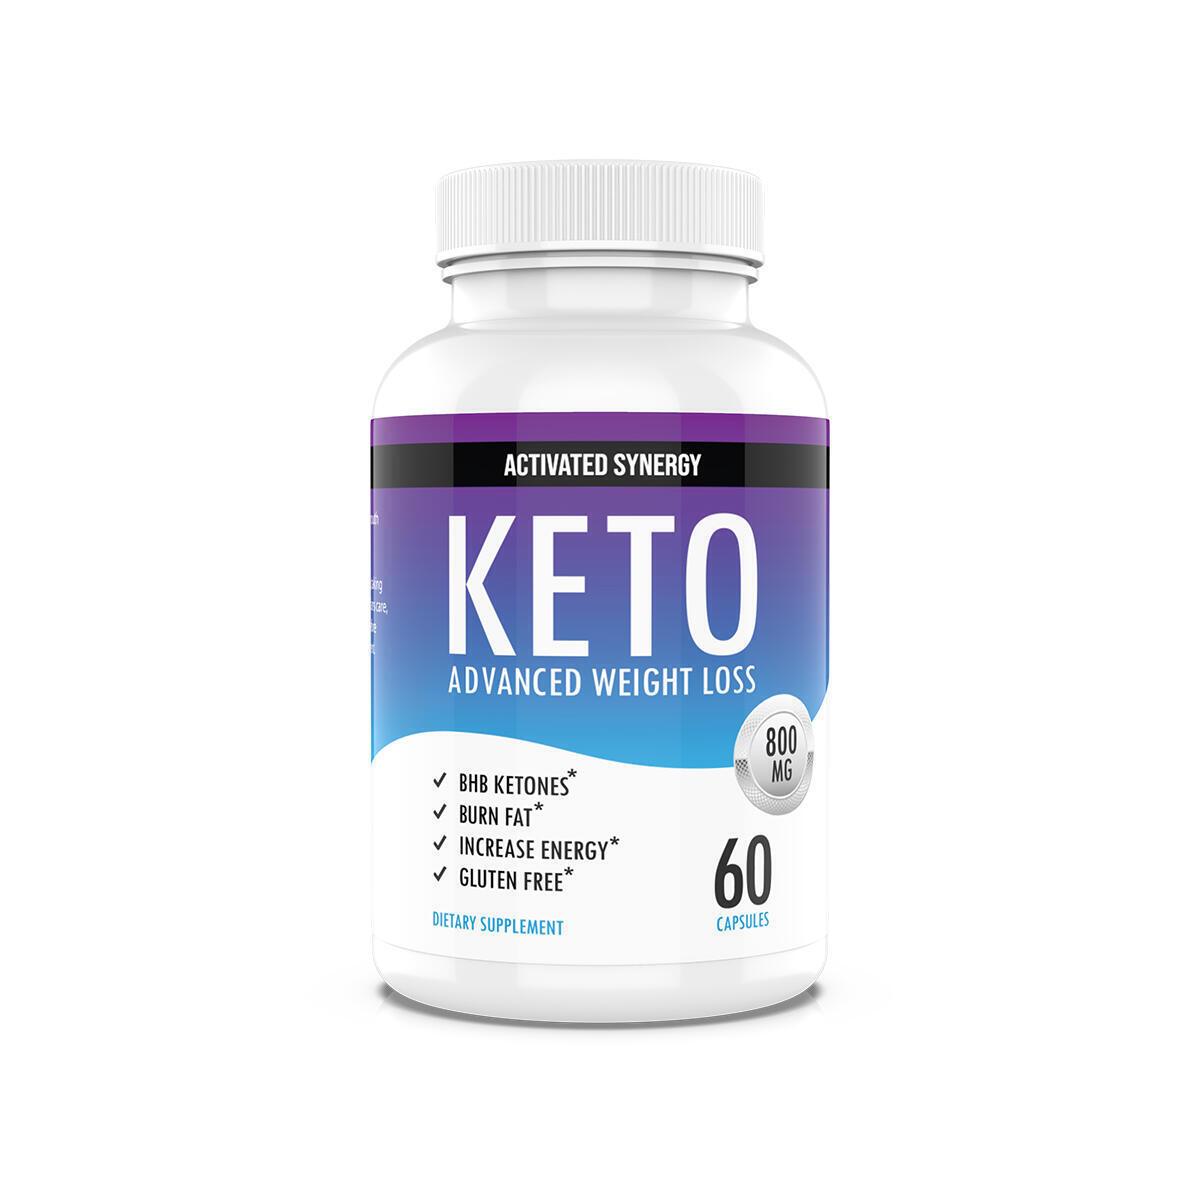 Keto Pills Diet Number One Rapid Premium Advanced Ketosis Boost Energy & Focus Manage Cravings Support Metabolism Keto BHB Supplement for Women and Men 30 Day Supply 60 Capsules